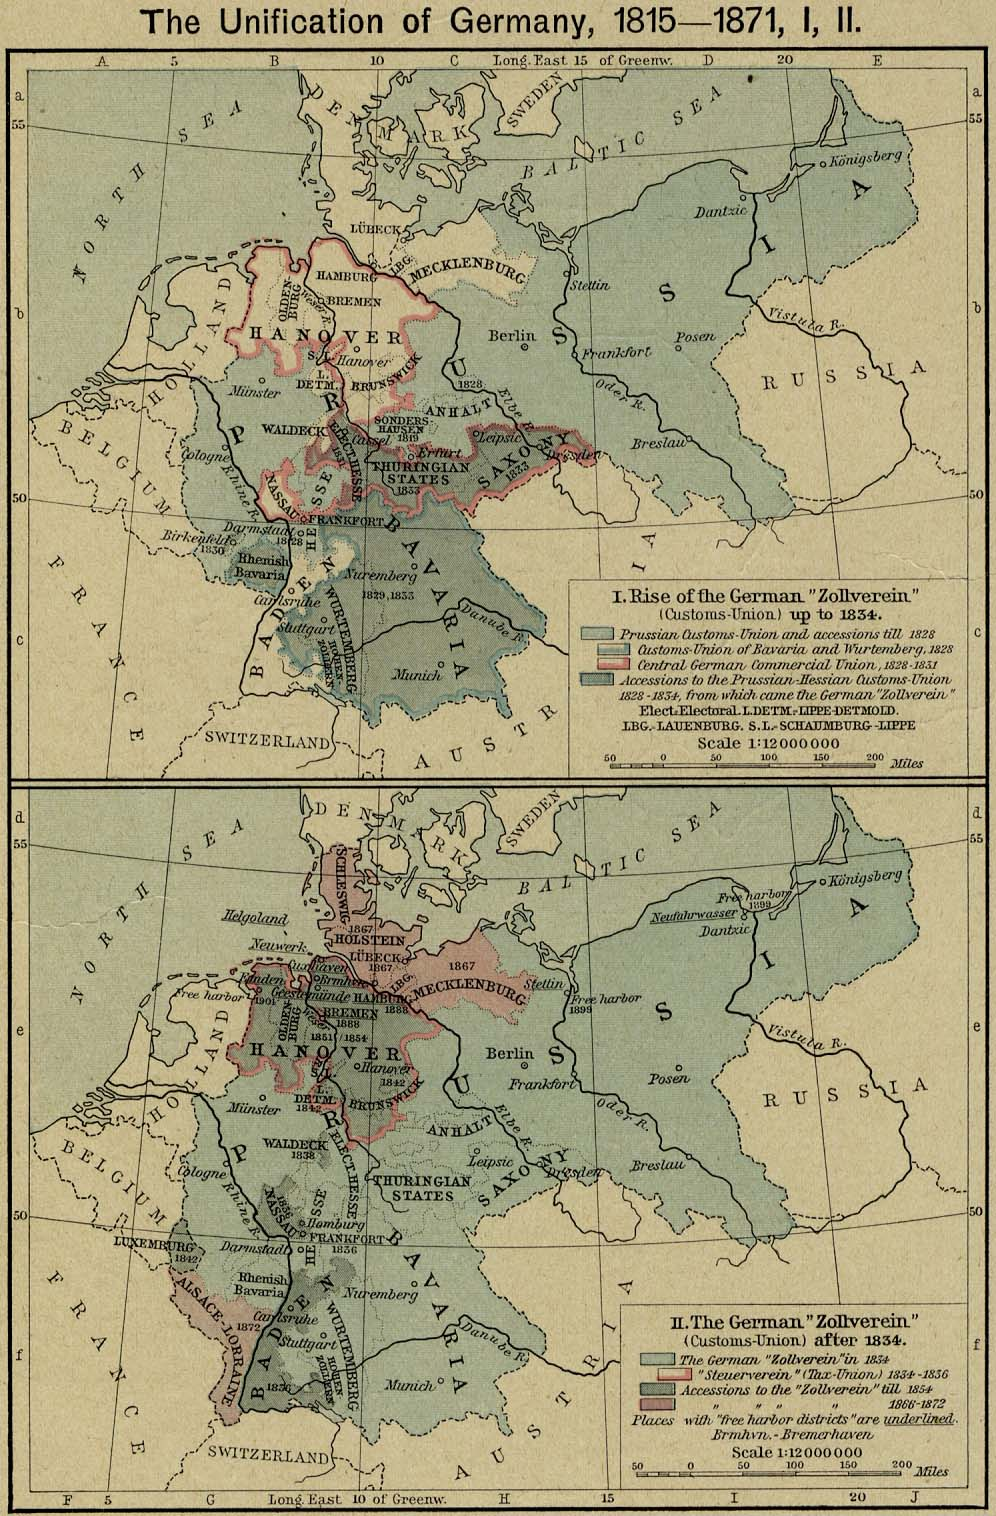 german_unified_1815_1871.jpg